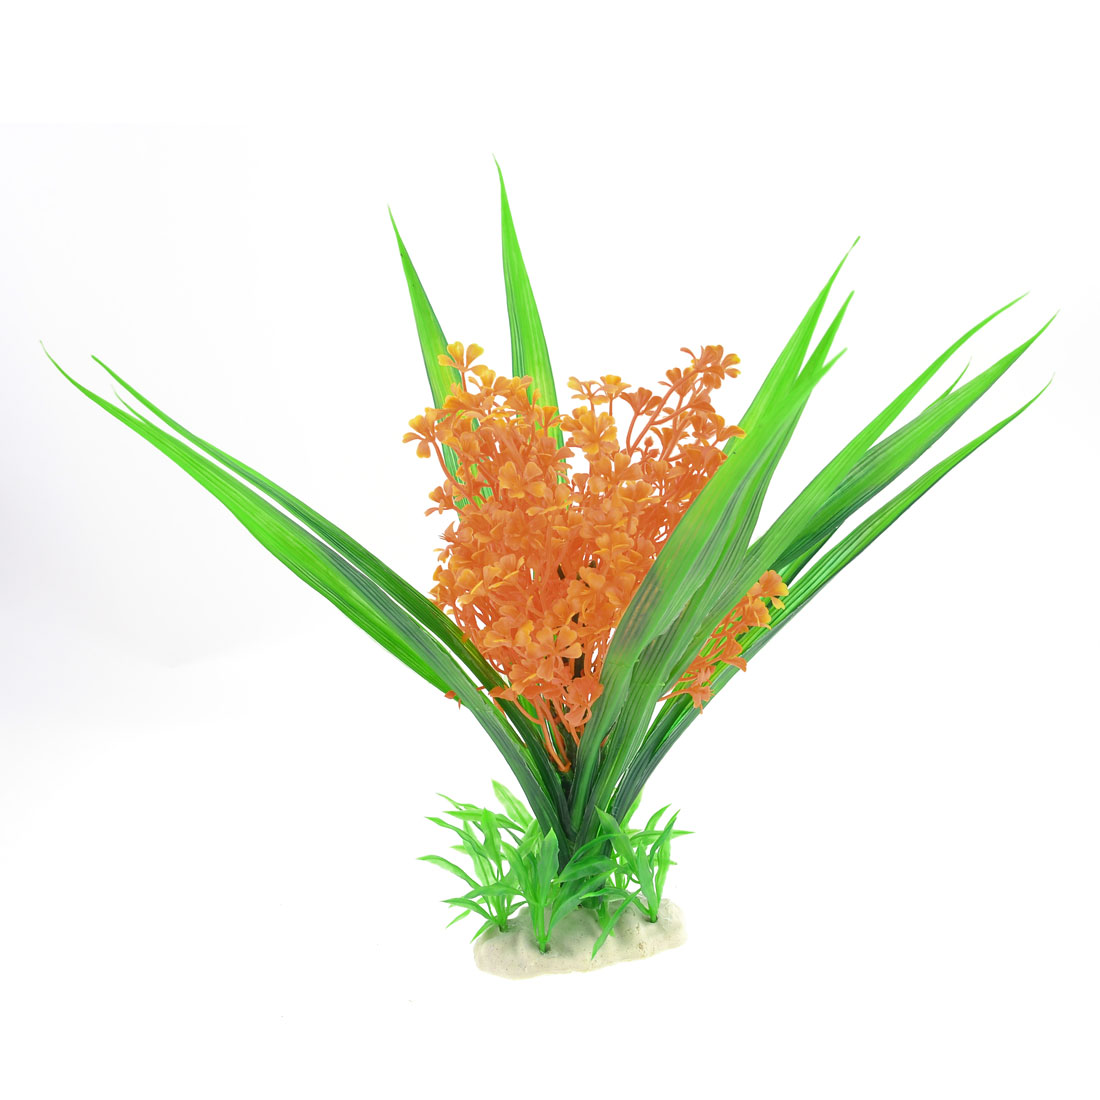 "Orange Green Aquarium Plastic Simulation Water Plant Decor 12"" High"